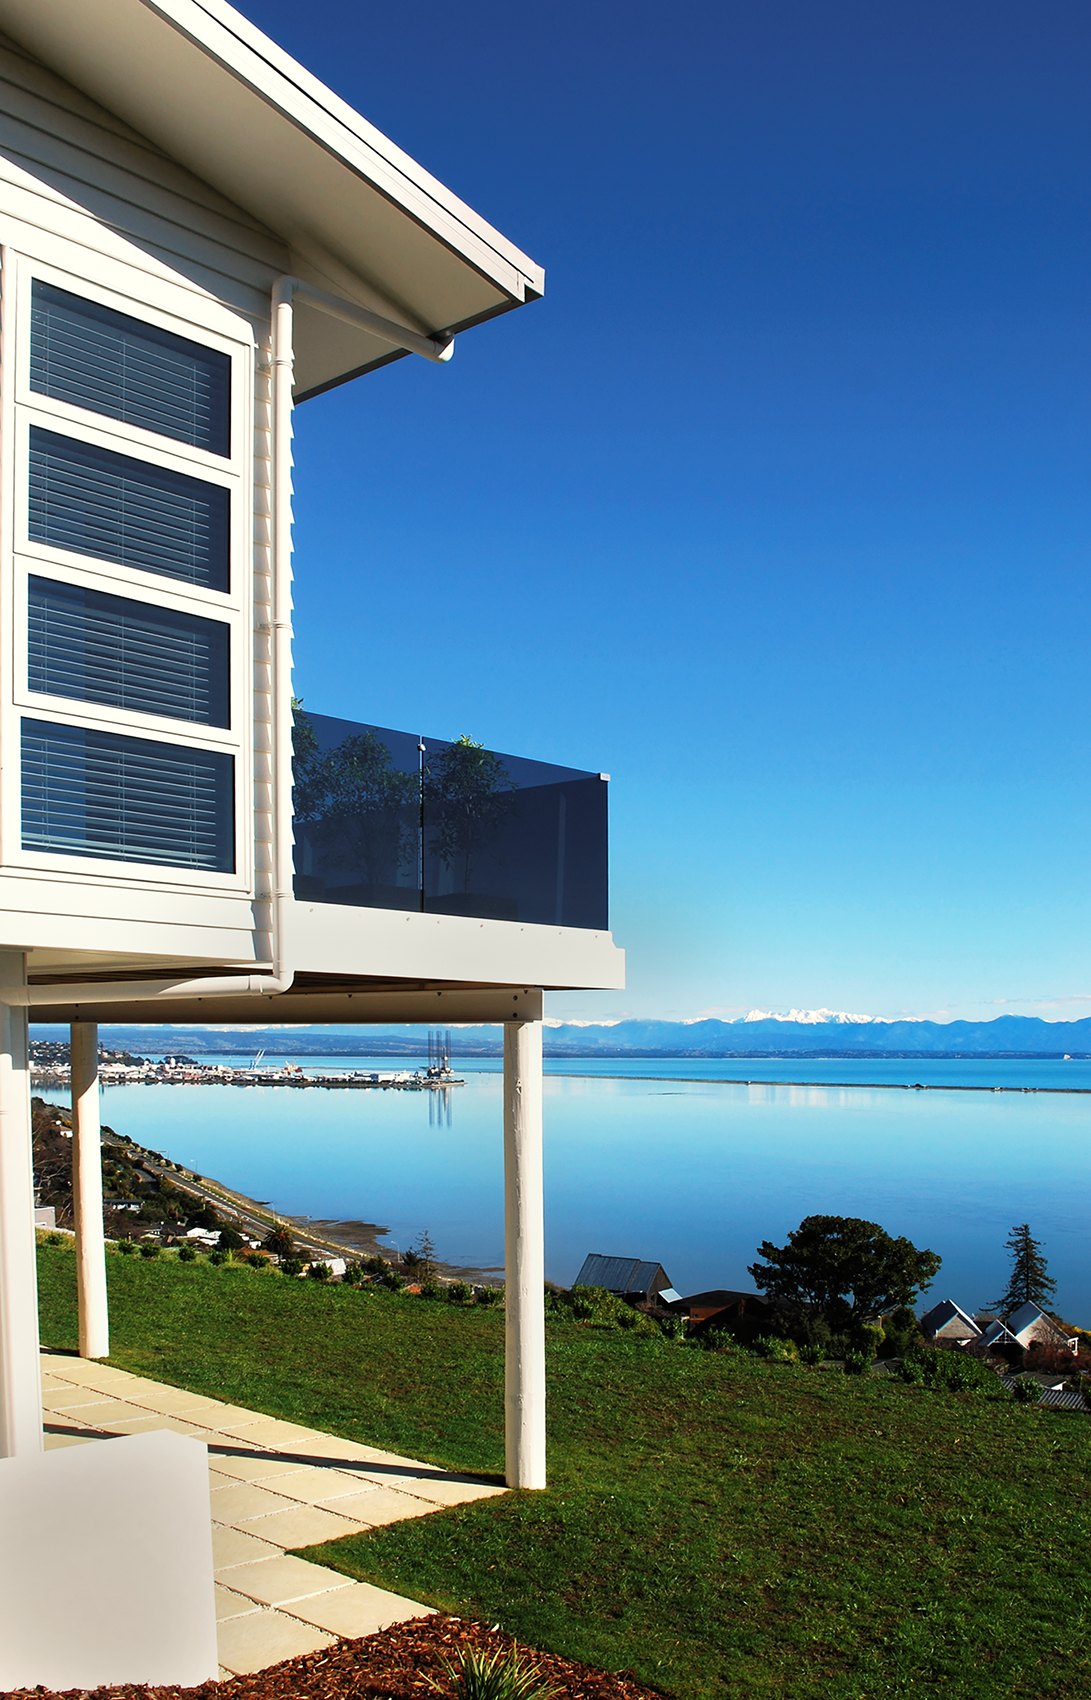 Residential, Nelson, New Zealand